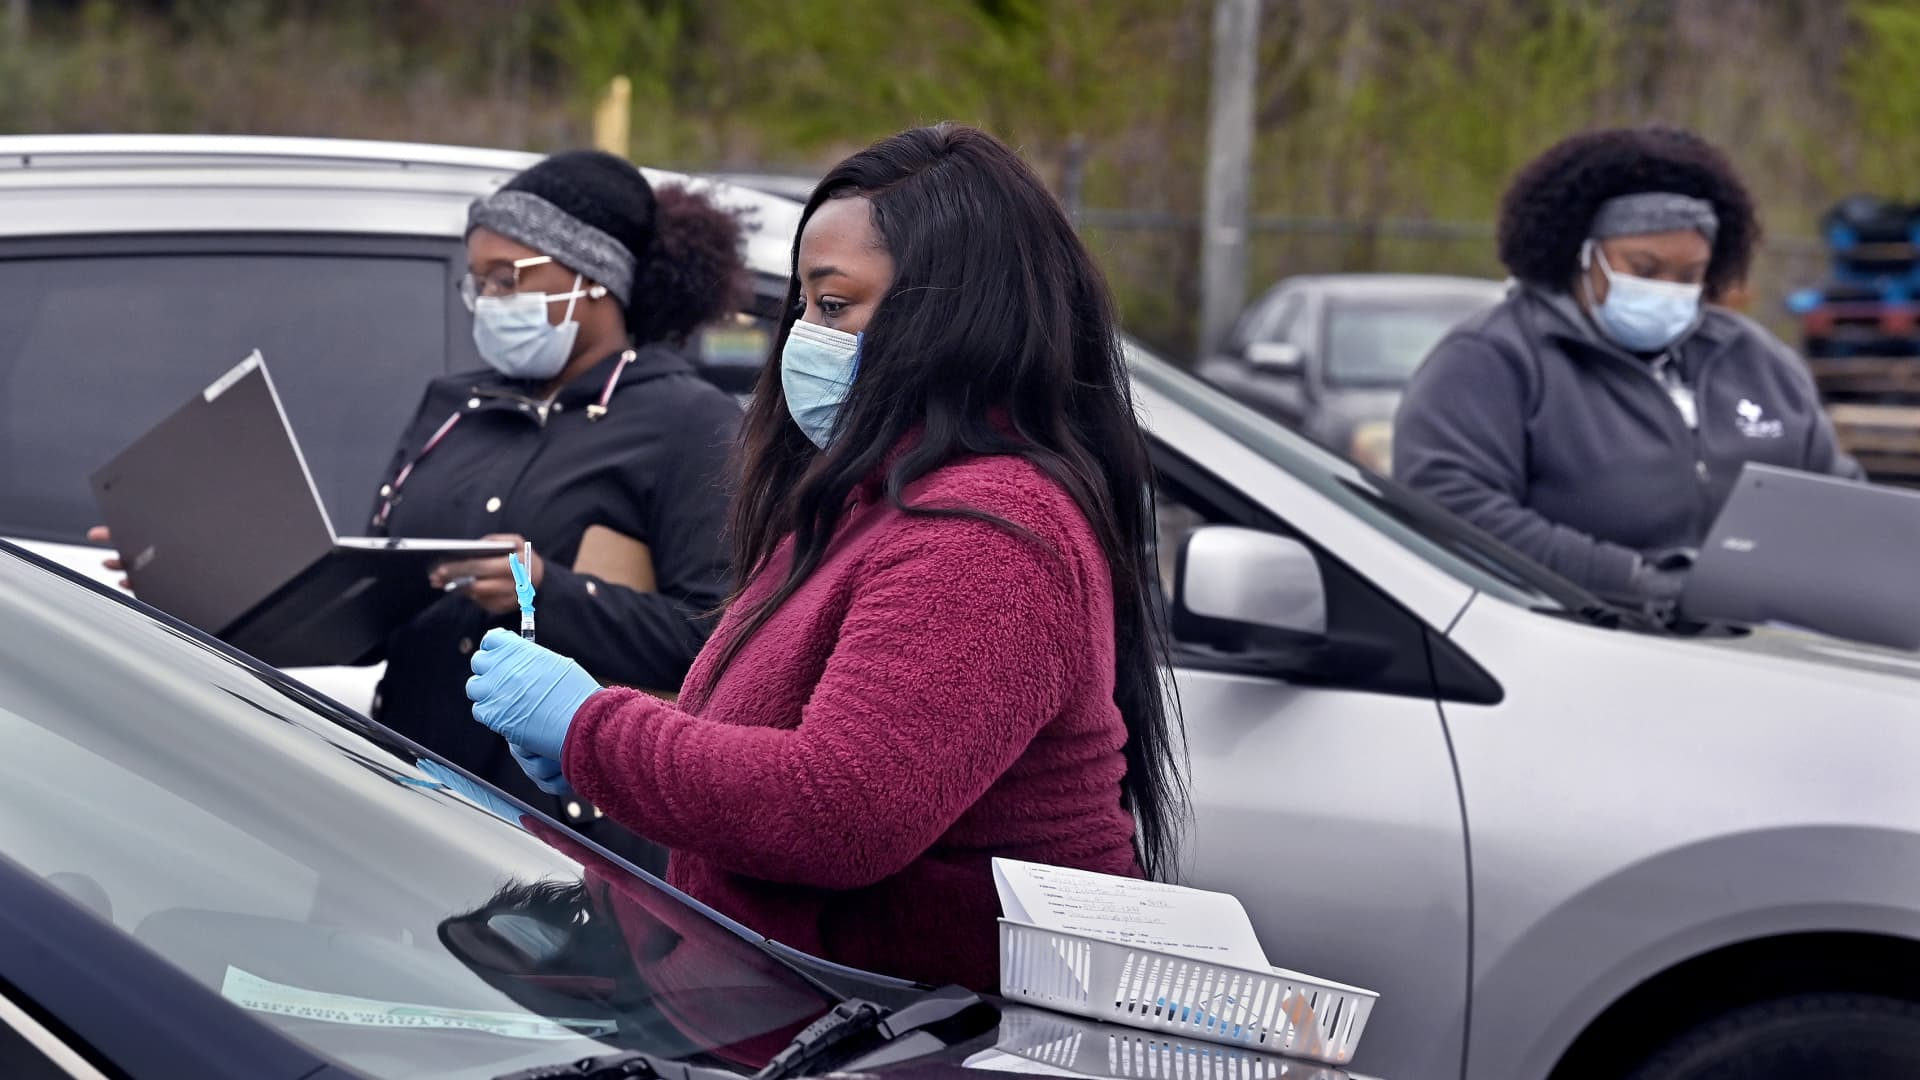 Lashondra Walter, (center), a nurse practitioner for Cahaba Medical Care gets ready to give a shot to a person in their car. She was joined by colleagues who roamed the parking lot with laptops to register people at the Linden National Guard Armory in Linden, Alabama on Friday, March 19, 2021.